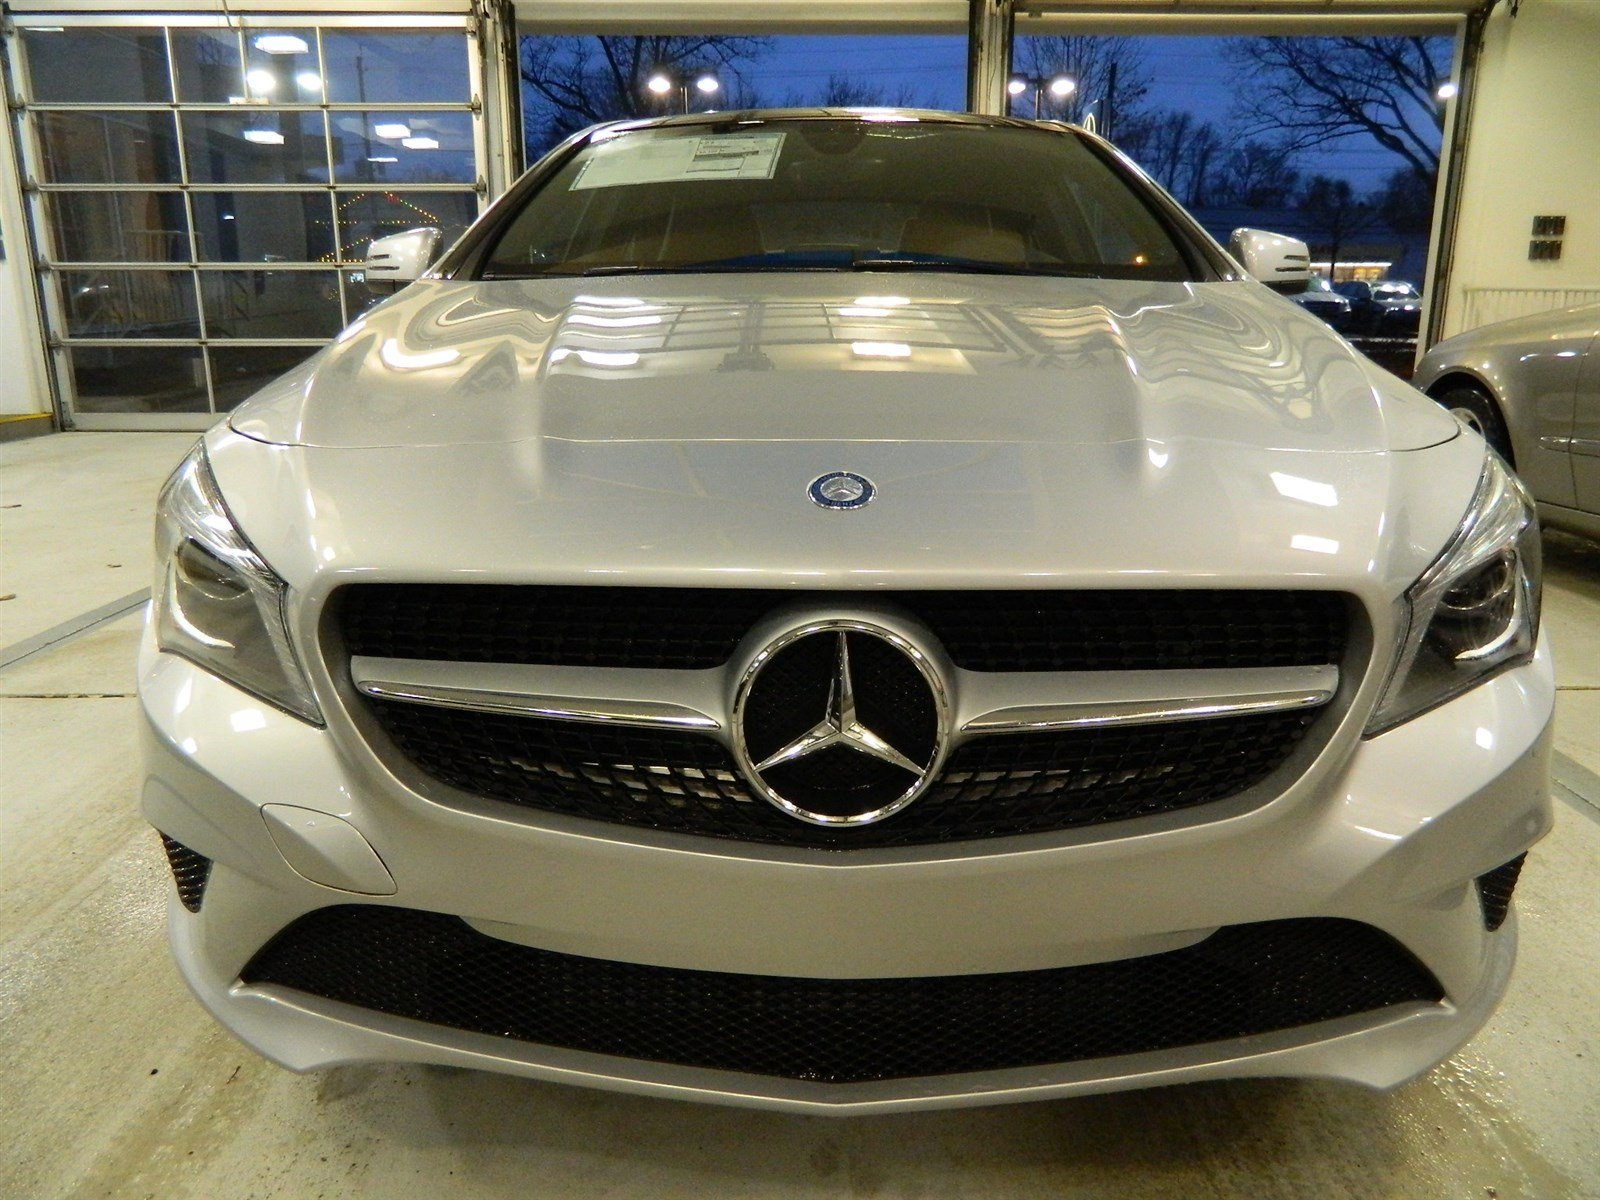 Certified pre owned vehicles mercedes benz of princeton for Mercedes benz of princeton lawrence township nj